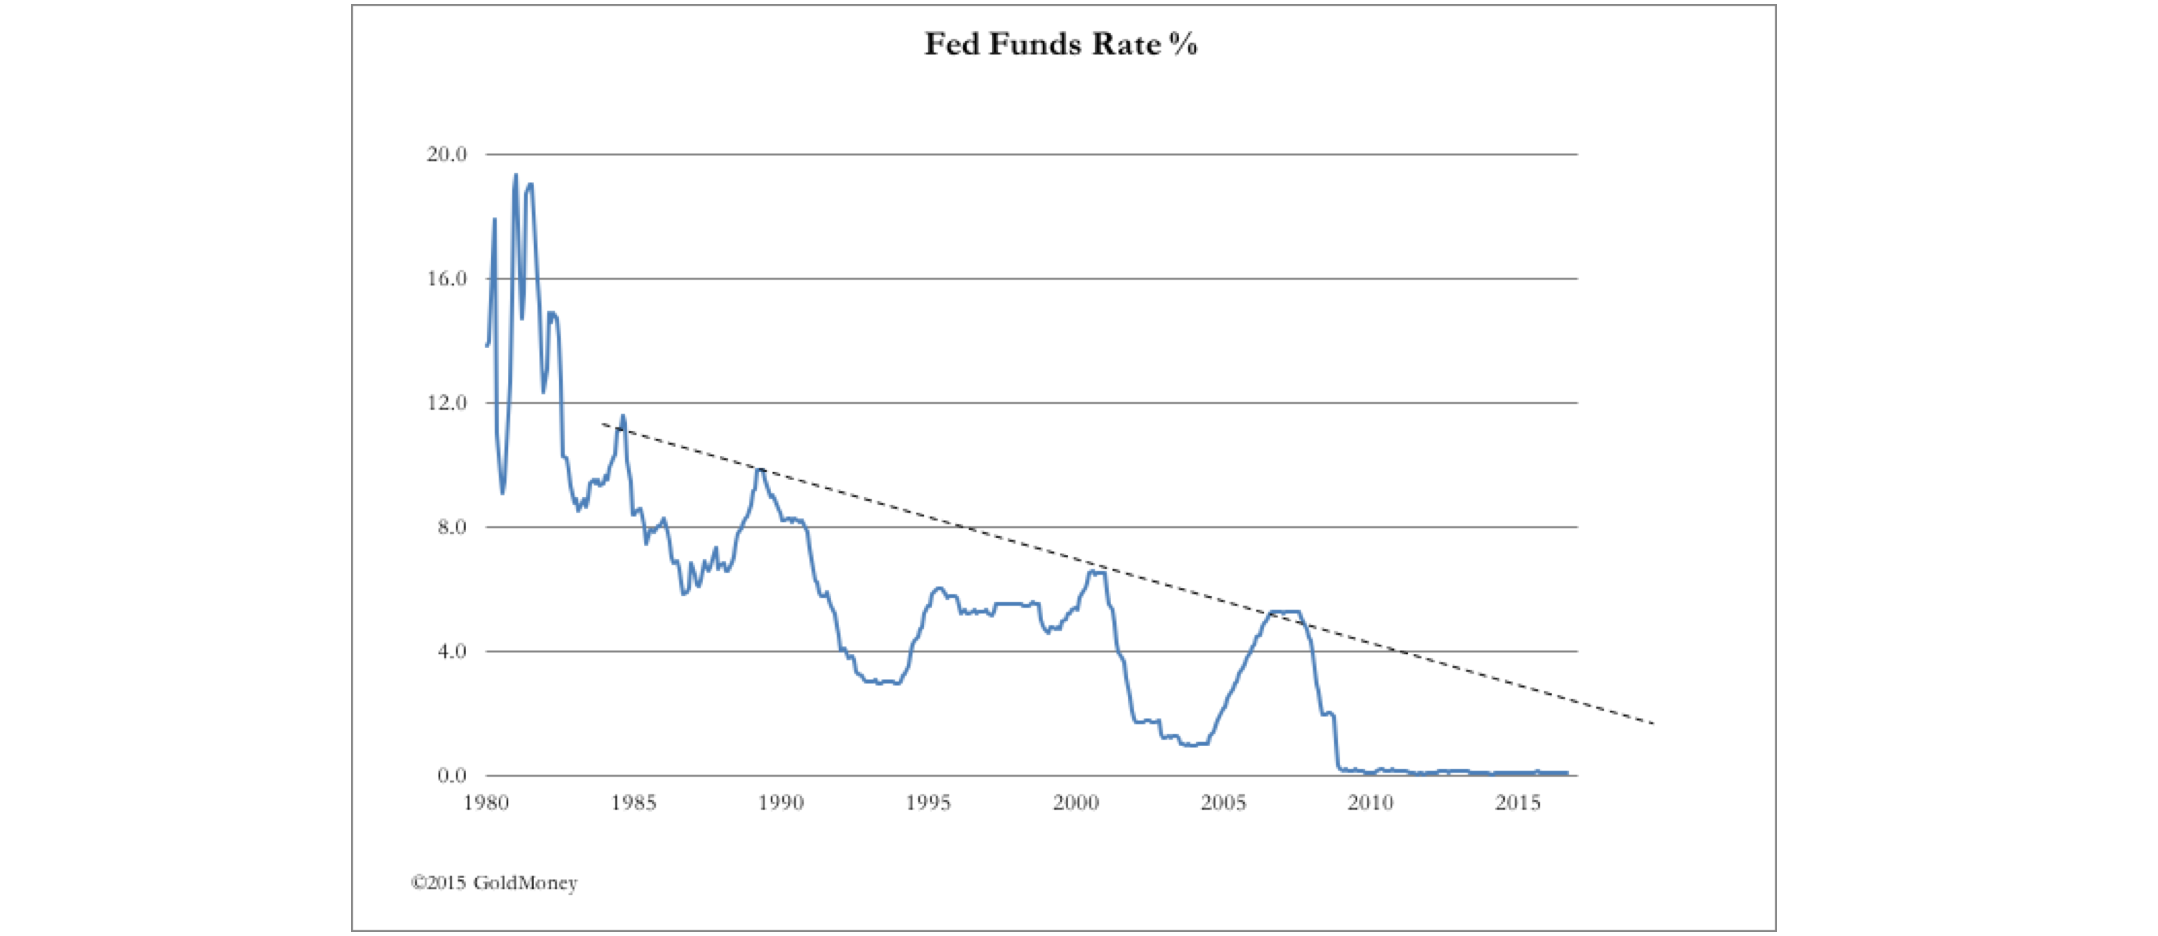 Fed Funds Rate Percentage